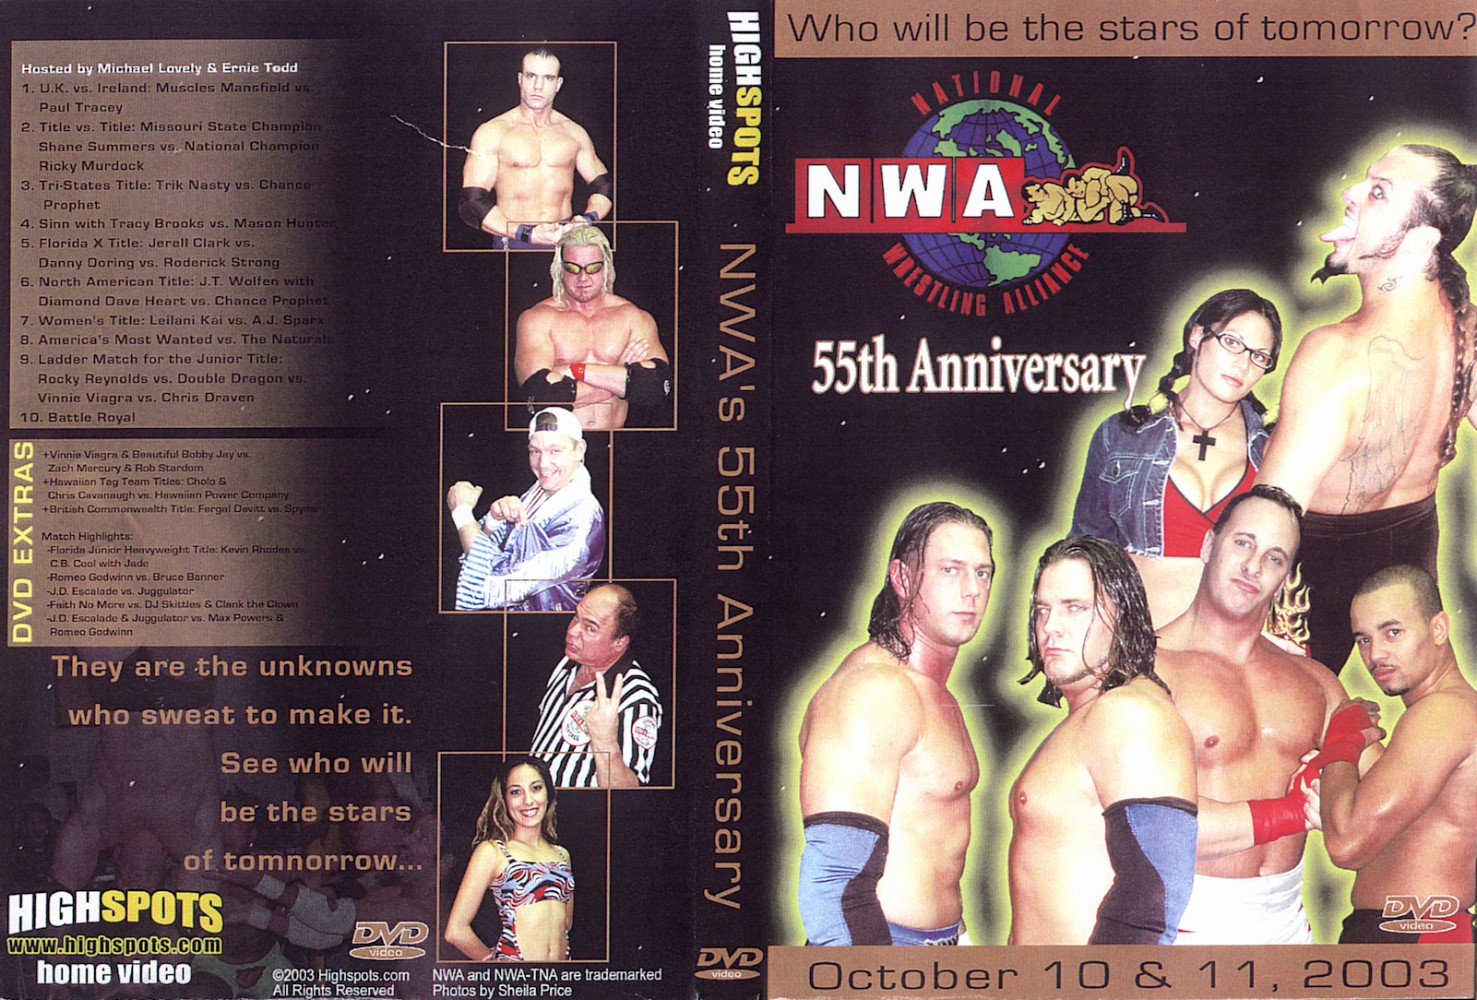 nwa55thanniversary5vp